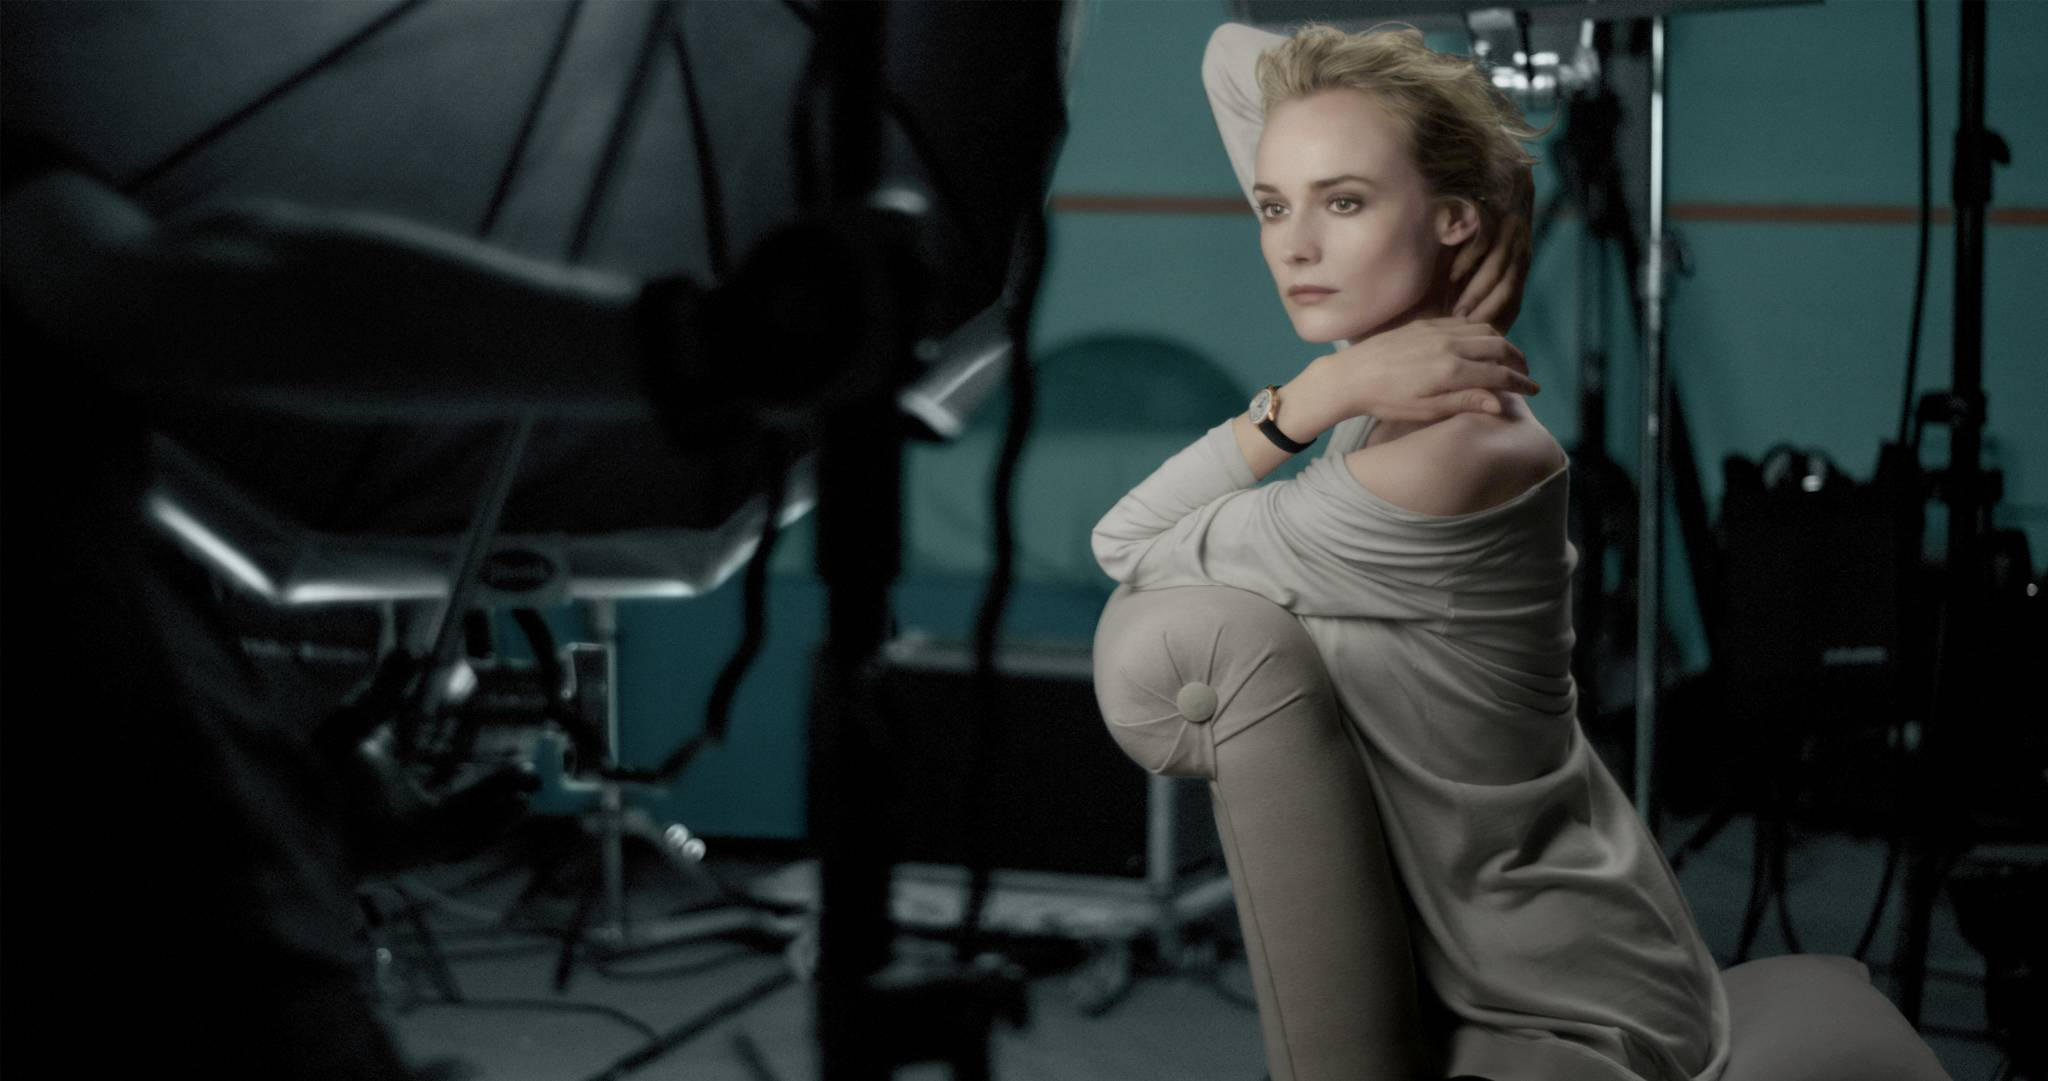 Diane-Kruger 1 the making of Rendez-Vous advertising campaign